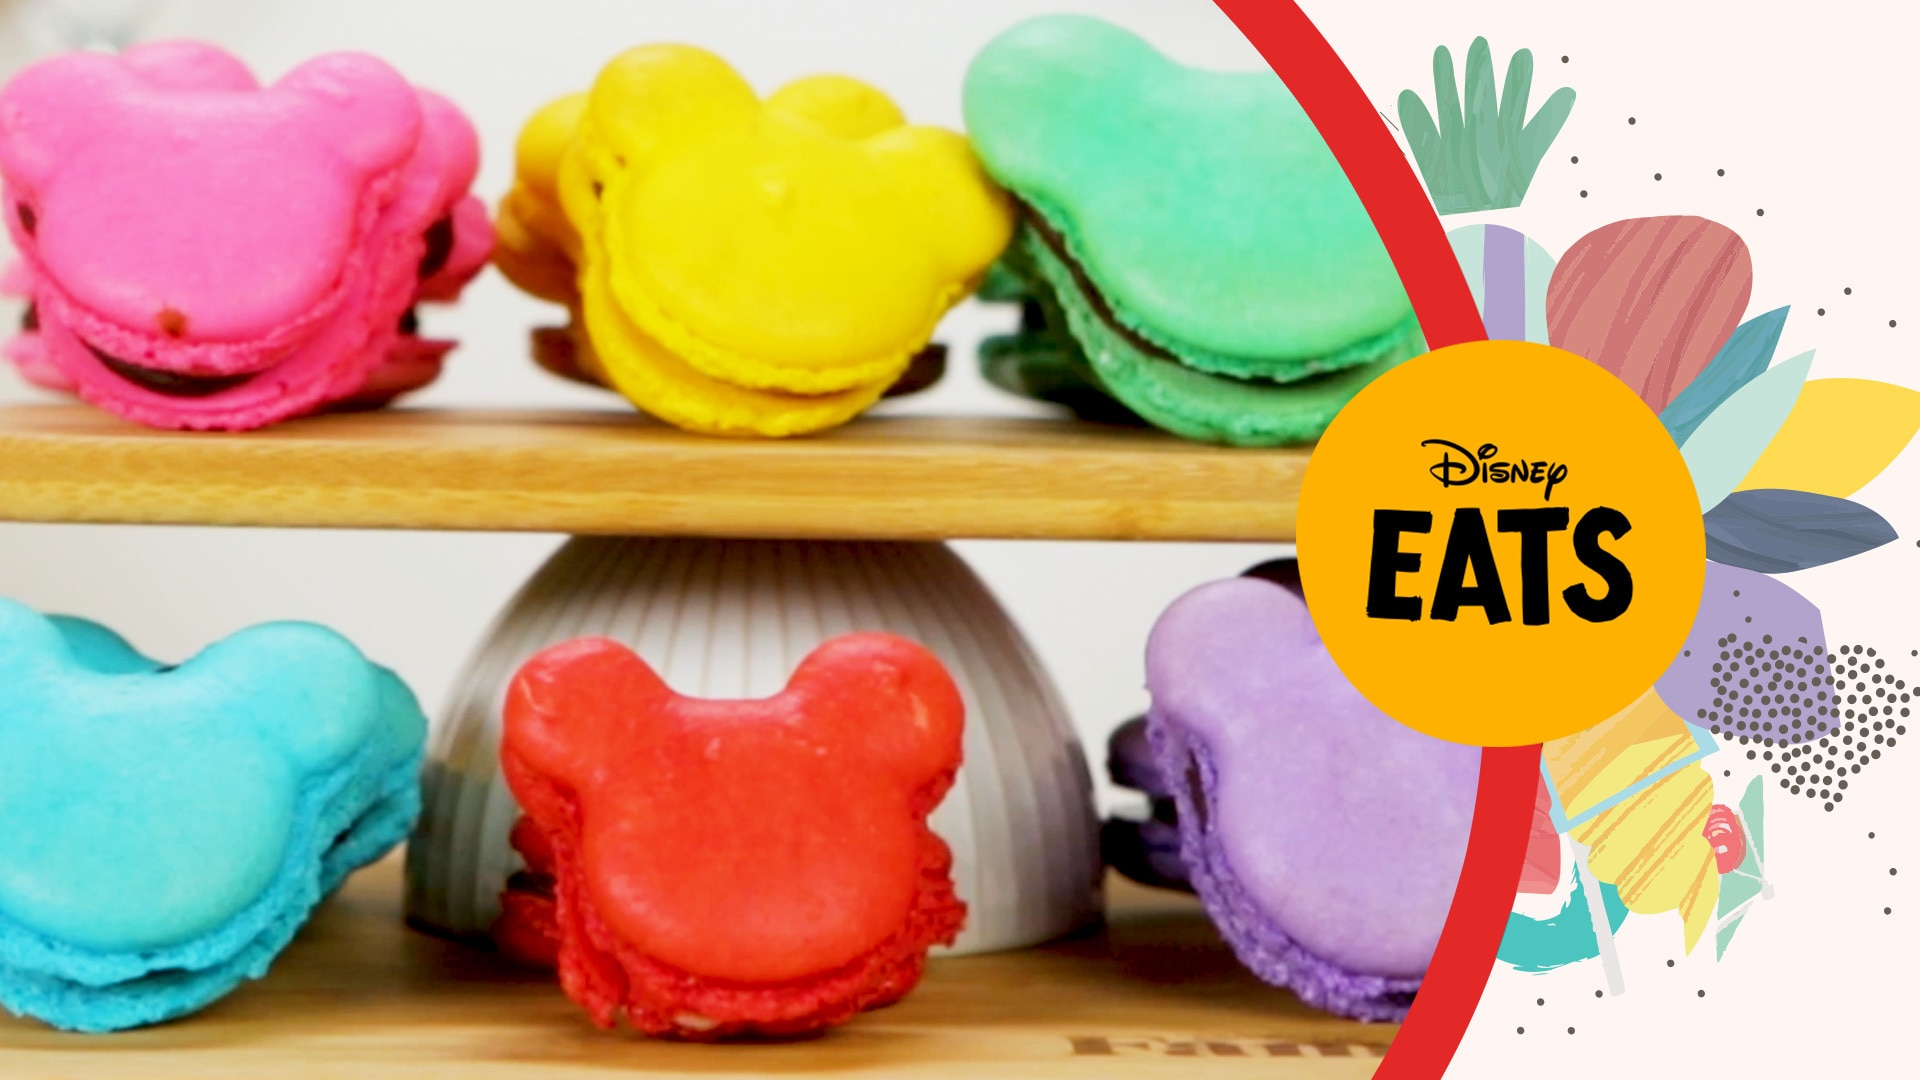 Mickey Mouse Macarons | Disney Eats